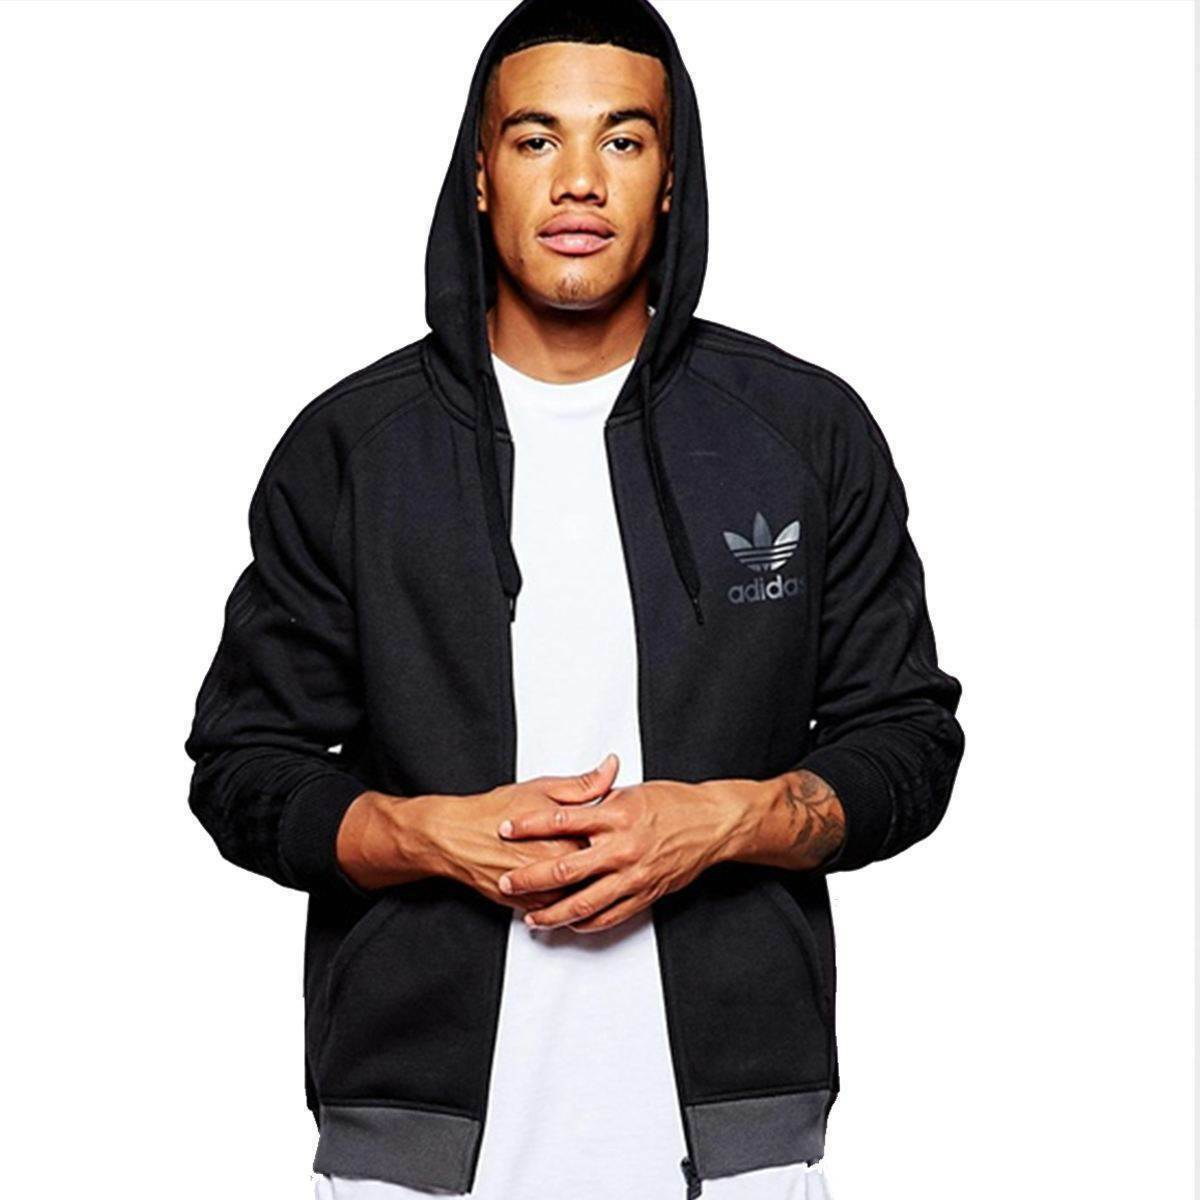 c6c7965e25dc adidas Originals SPO Trefoil Mens Full Zip Black Hoody Medium Ab7588 ...